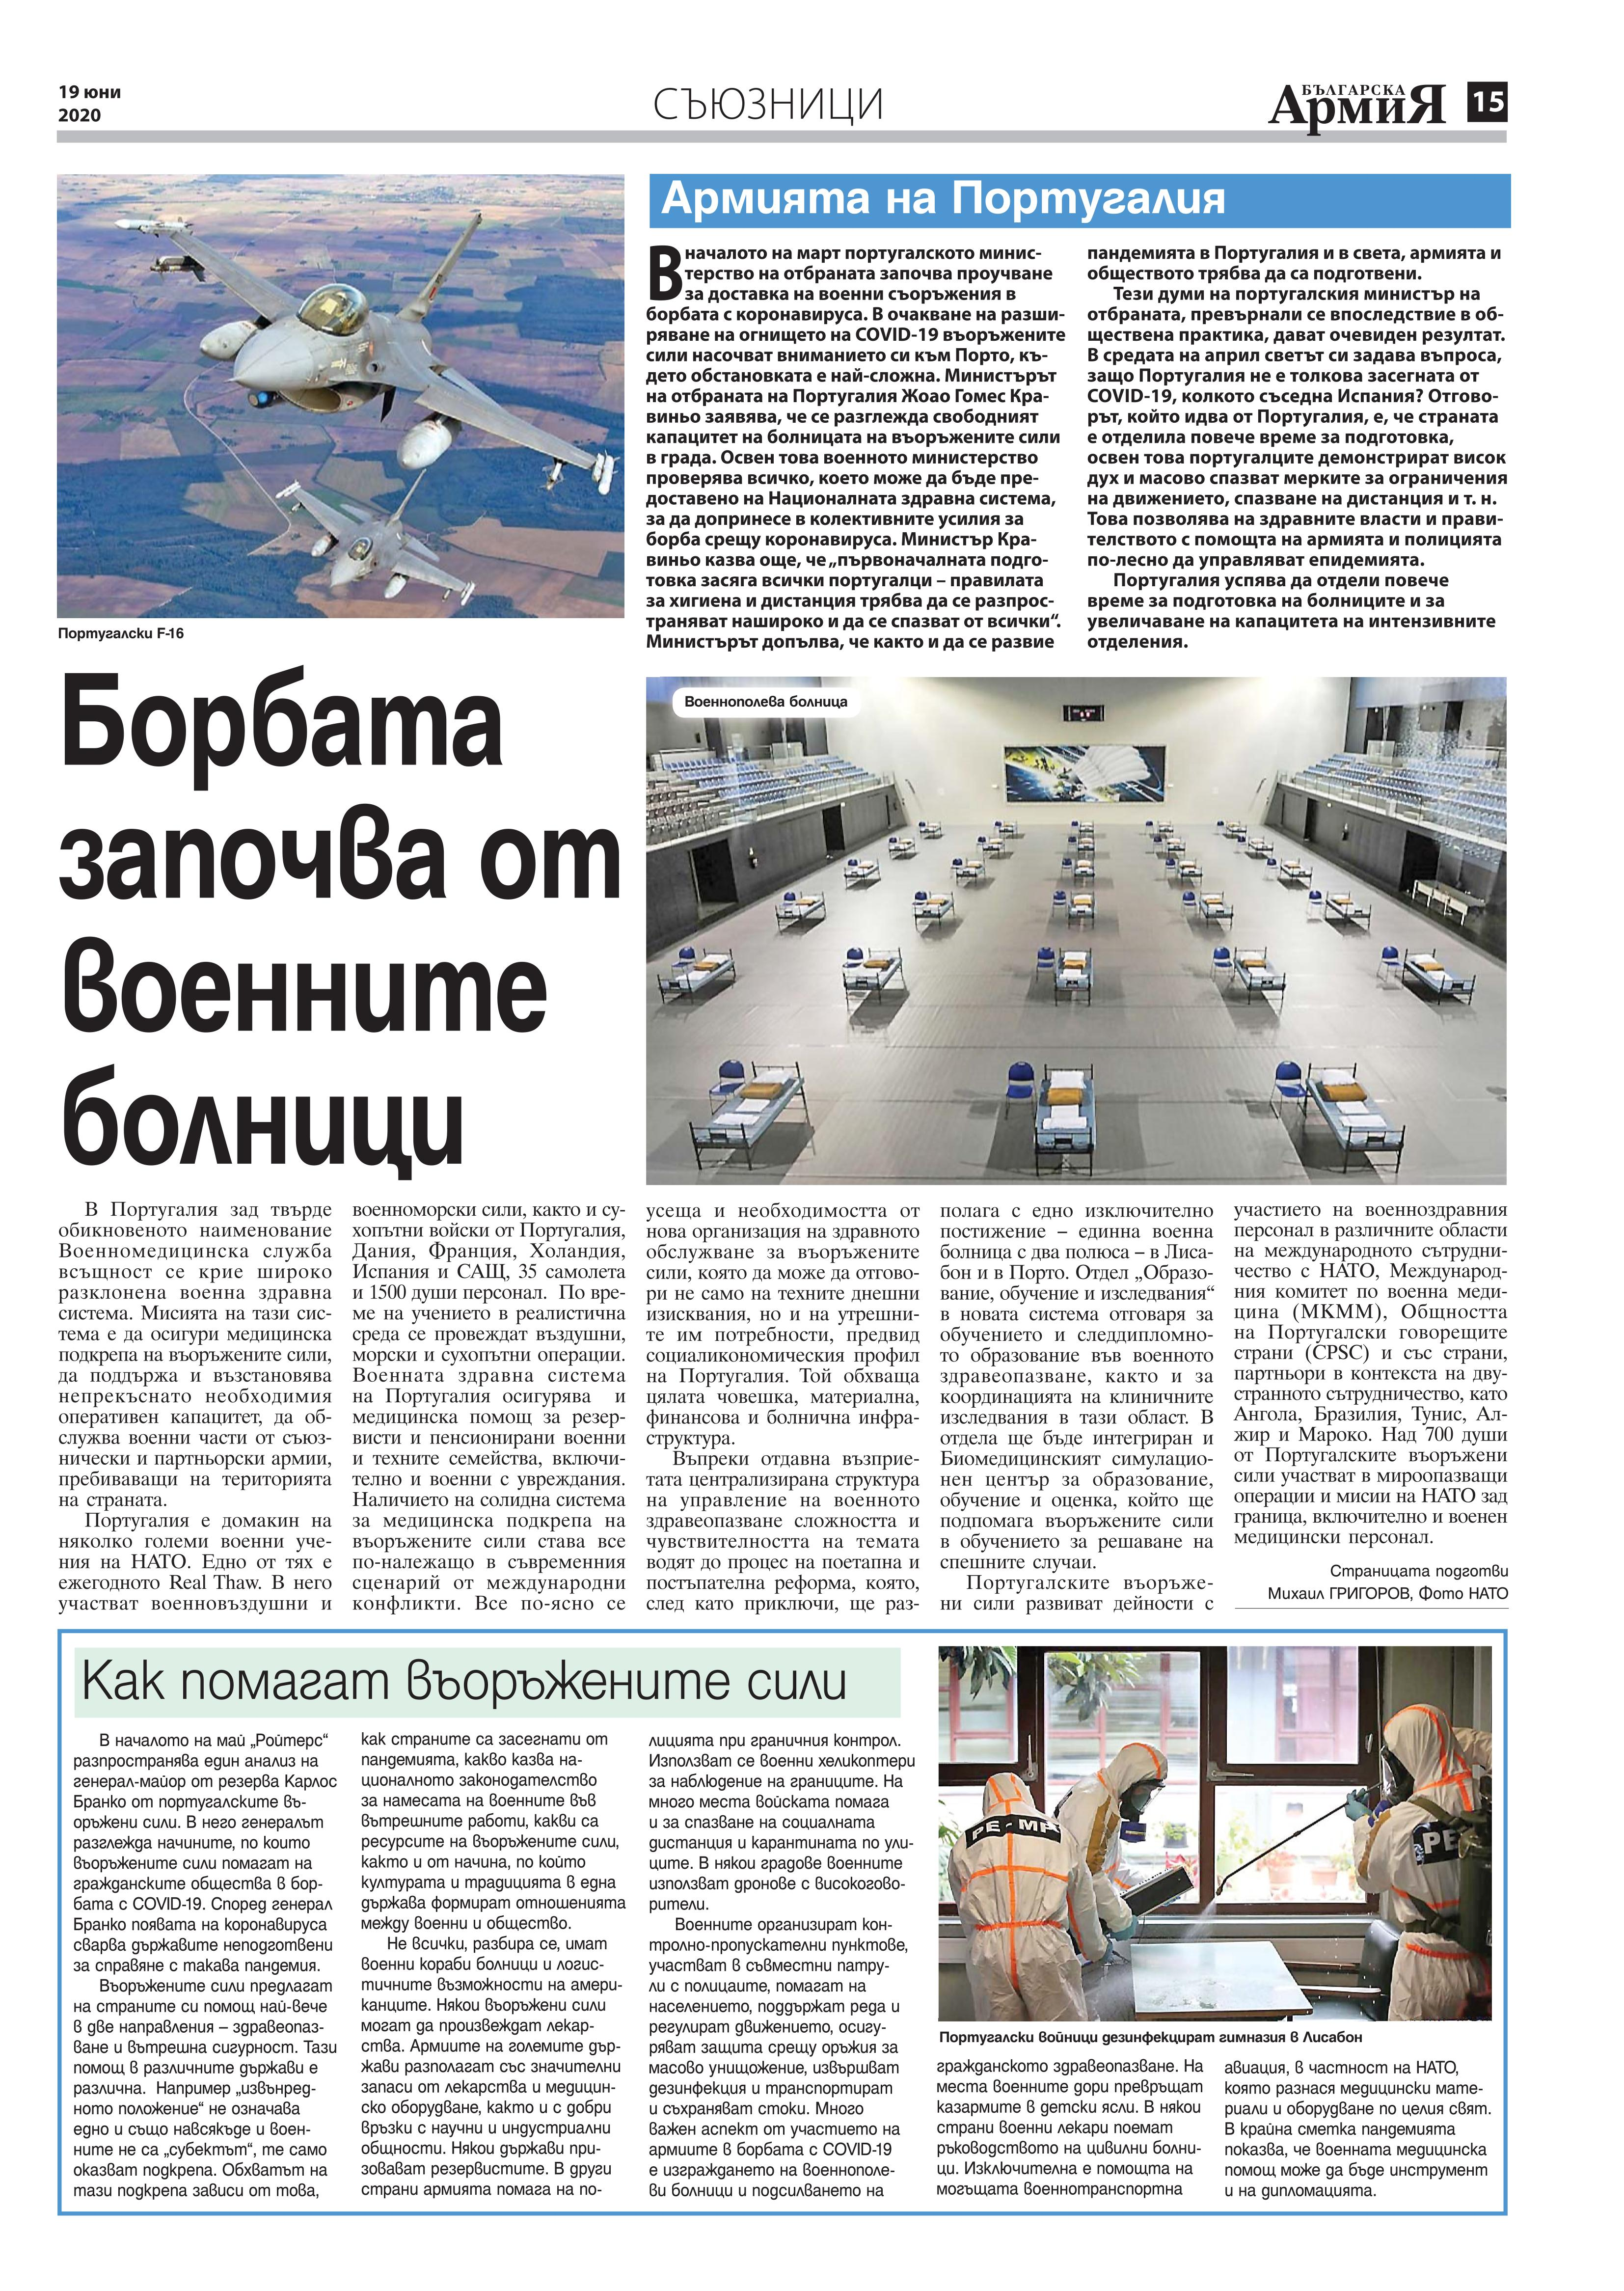 https://armymedia.bg/wp-content/uploads/2015/06/15.page1_-144.jpg